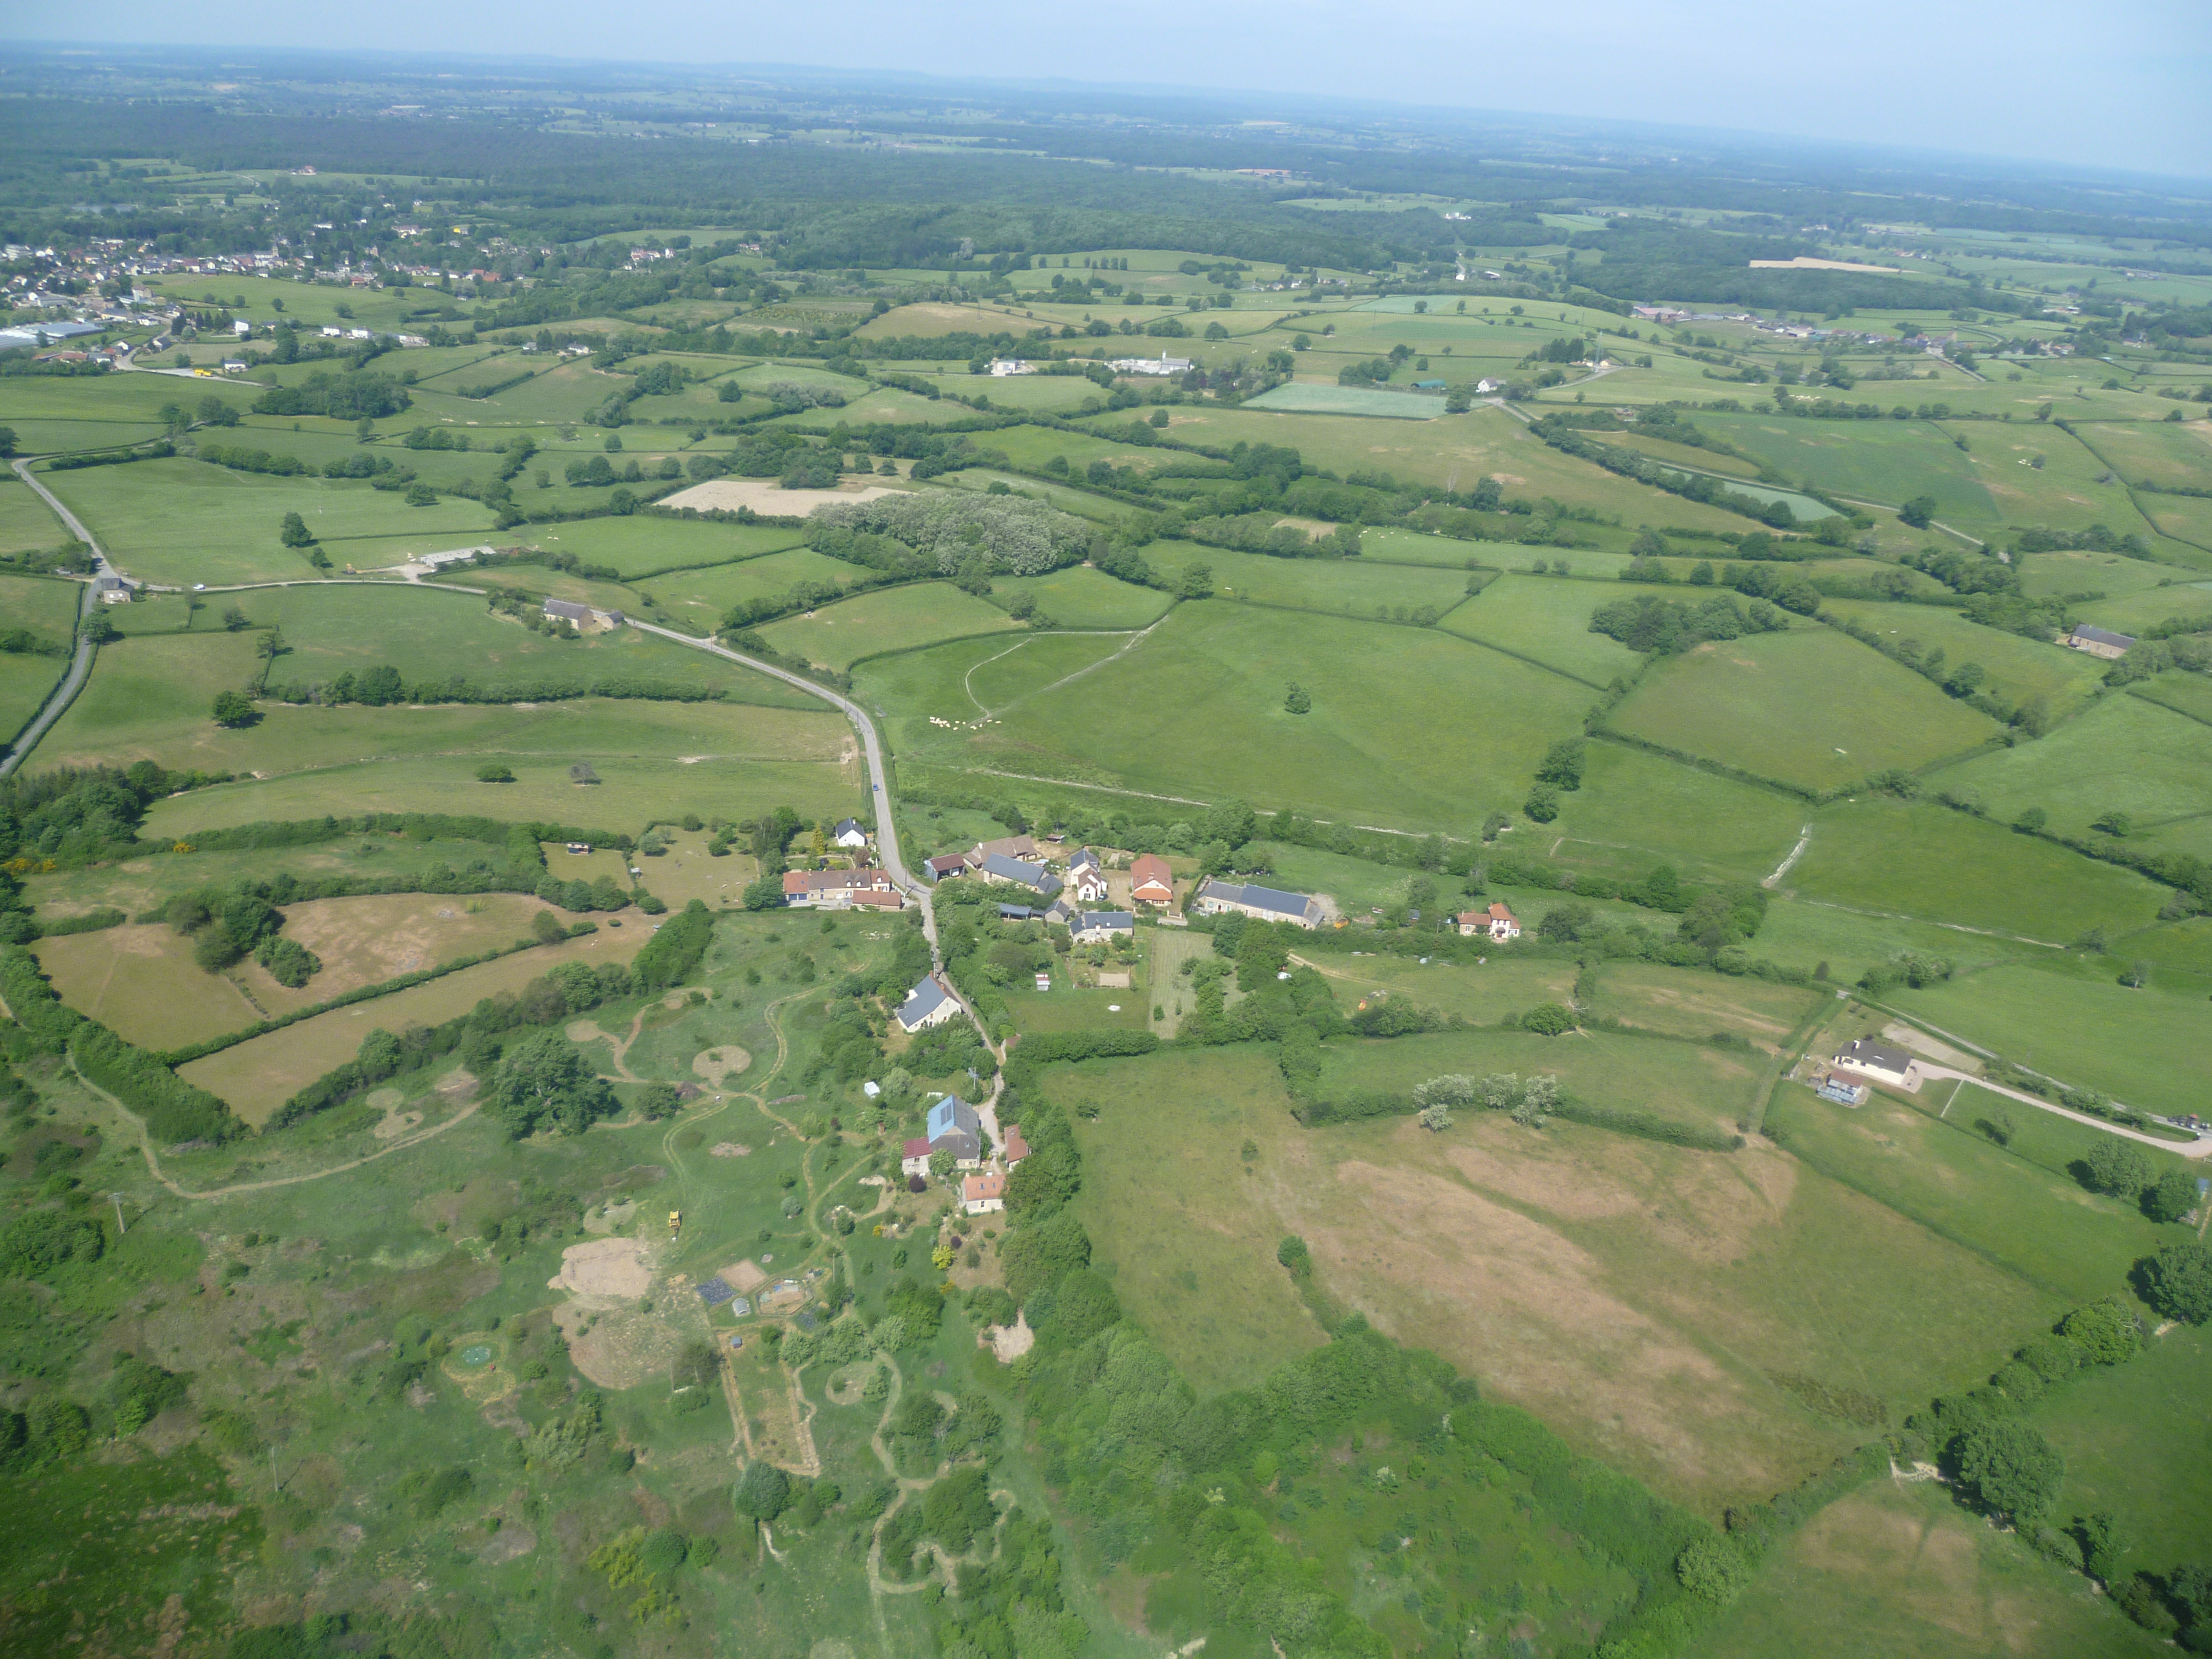 File:Helicopter view near Saint-Honoré-les-Bains, Burgundy ...